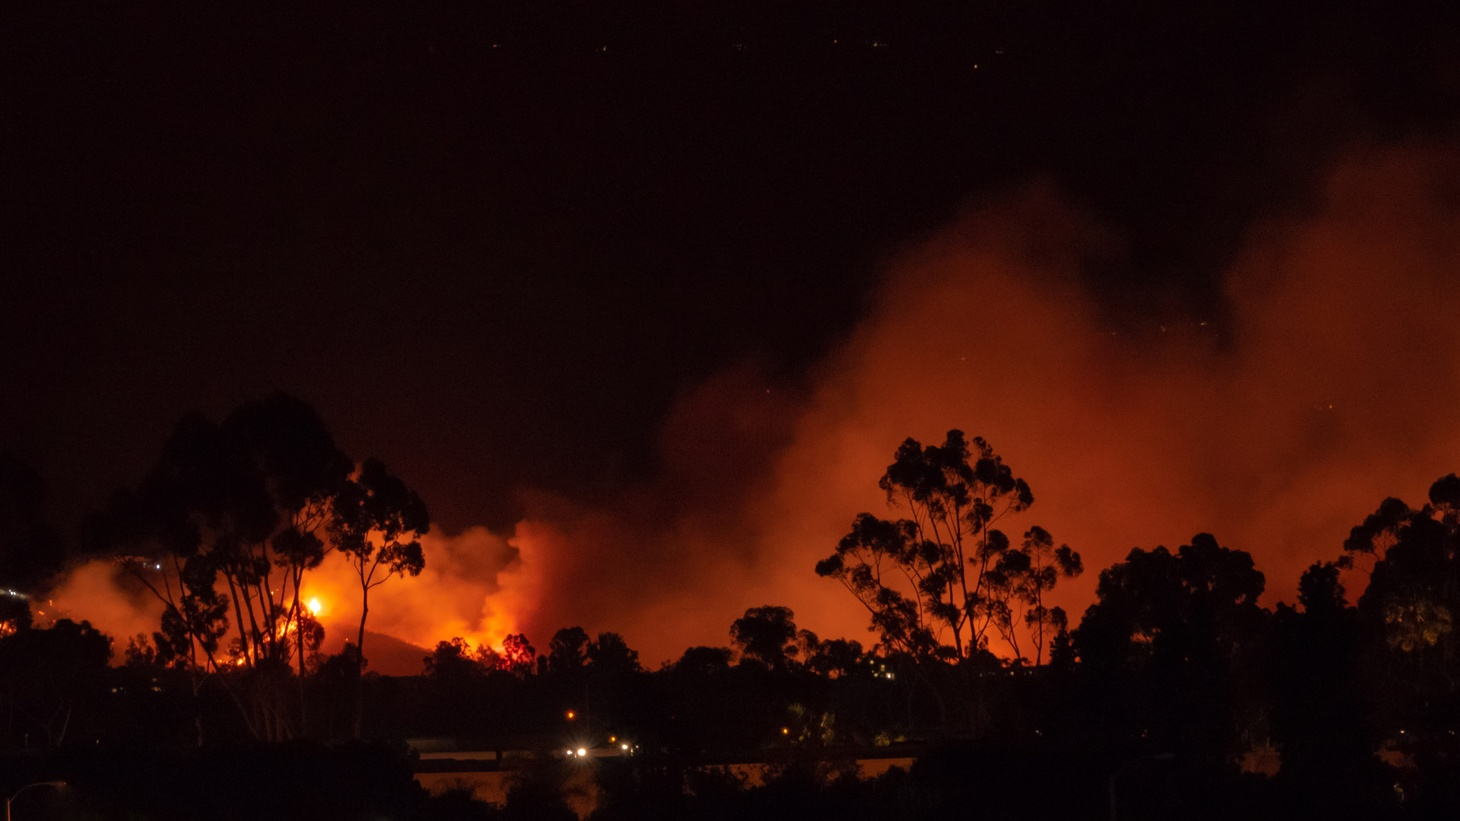 Officials in Santa Barbara are discussing what went right, and what went wrong the night the Holiday Fire broke out in Goleta earlier this month. One major issue was getting timely emergency alerts out to the people who needed them the most.